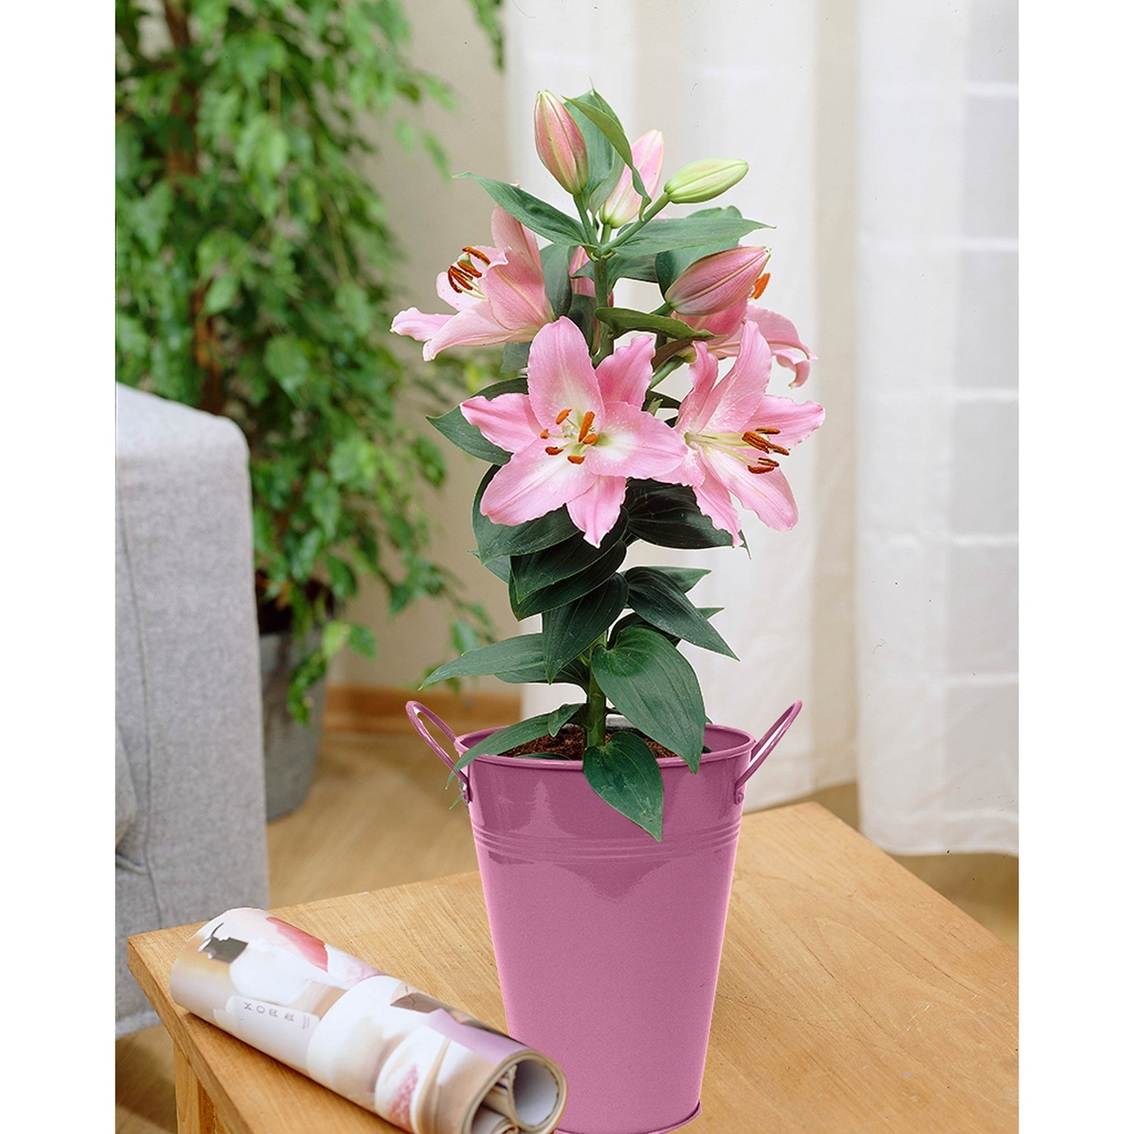 Van Zyverden Patio Lily Souvenir With Pink Metal Planter And Growers on